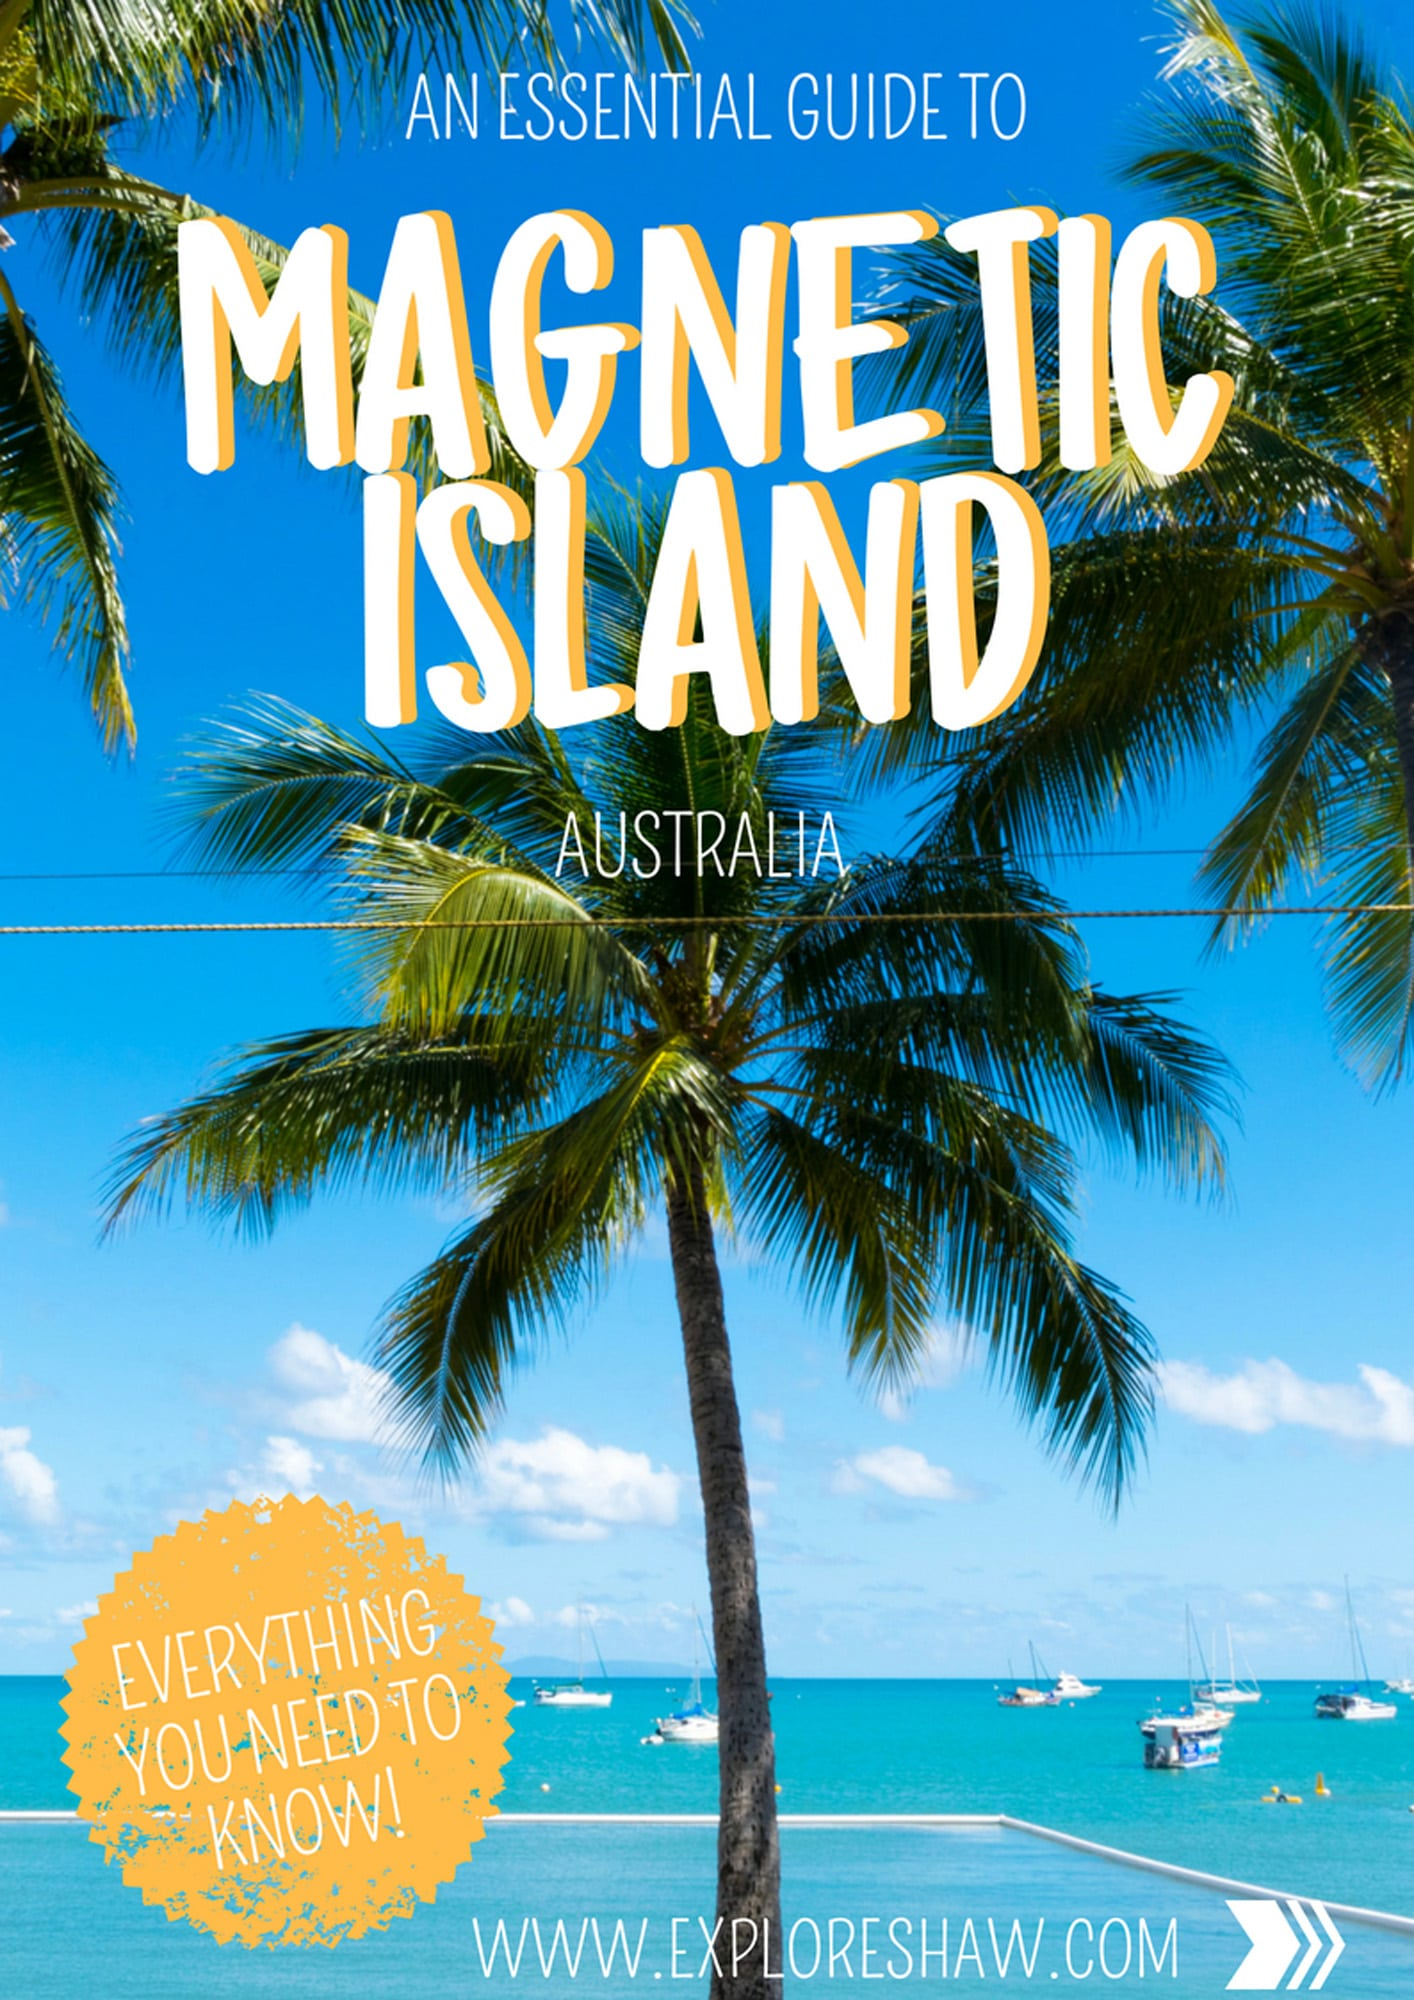 AN ESSENTIAL GUIDE TO MAGNETIC ISLAND